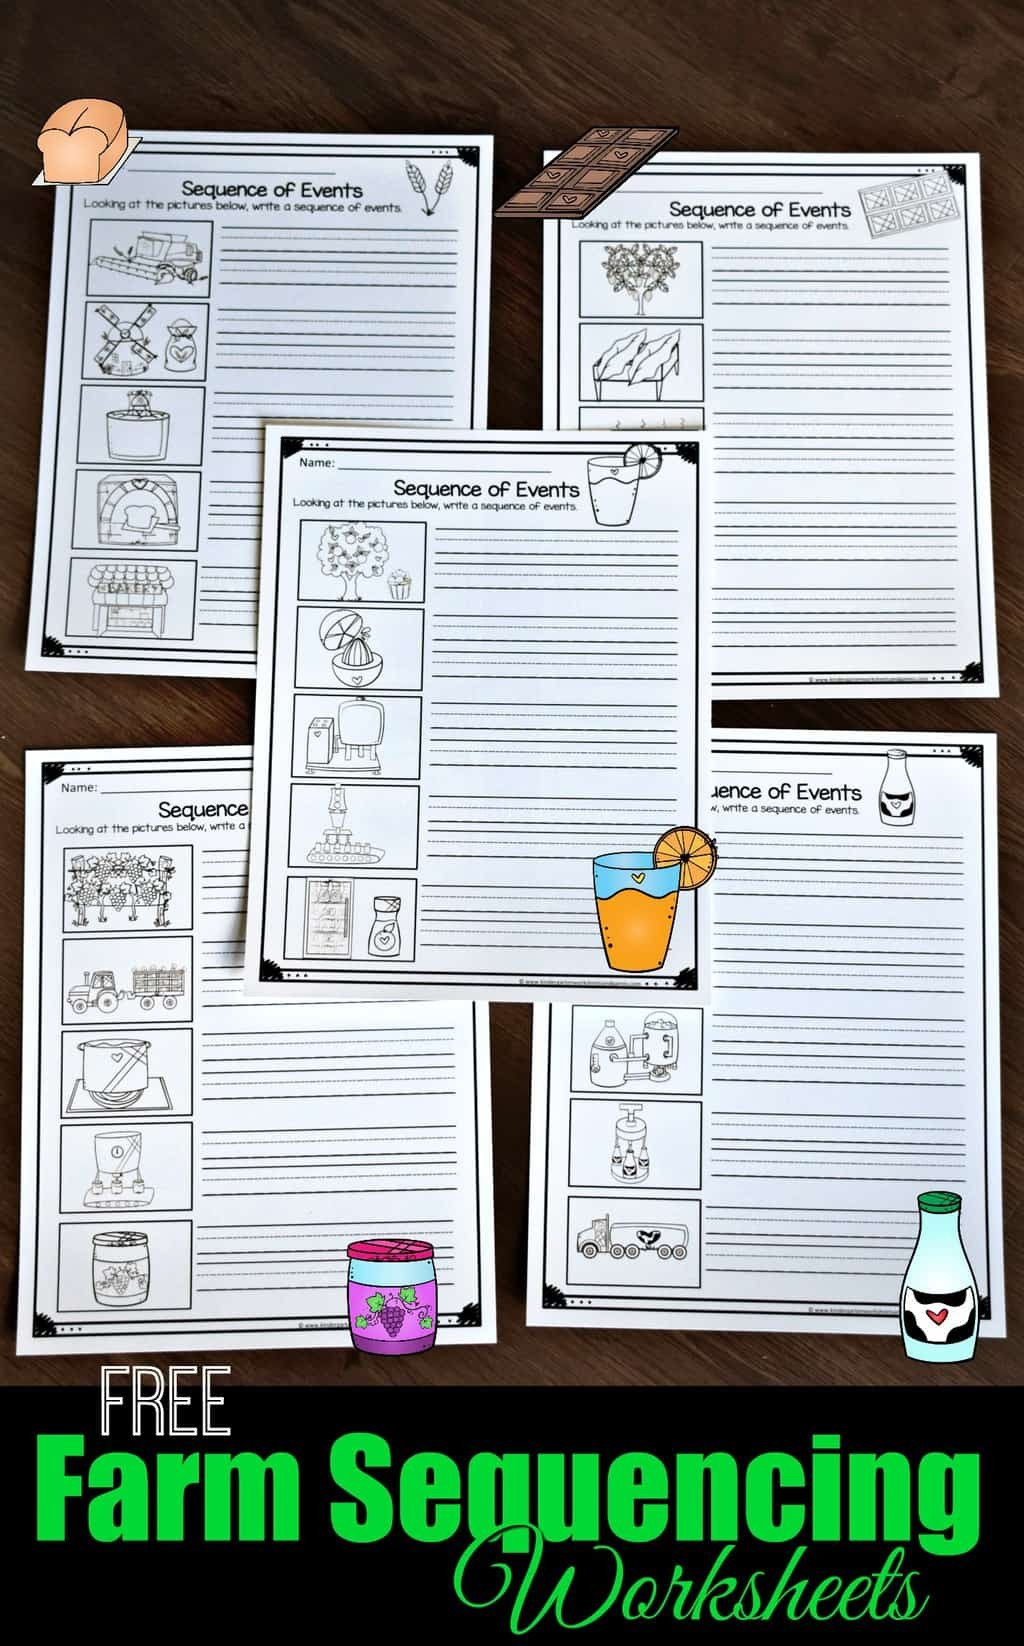 Free Sequencing Worksheets Free Farm Sequencing Worksheets